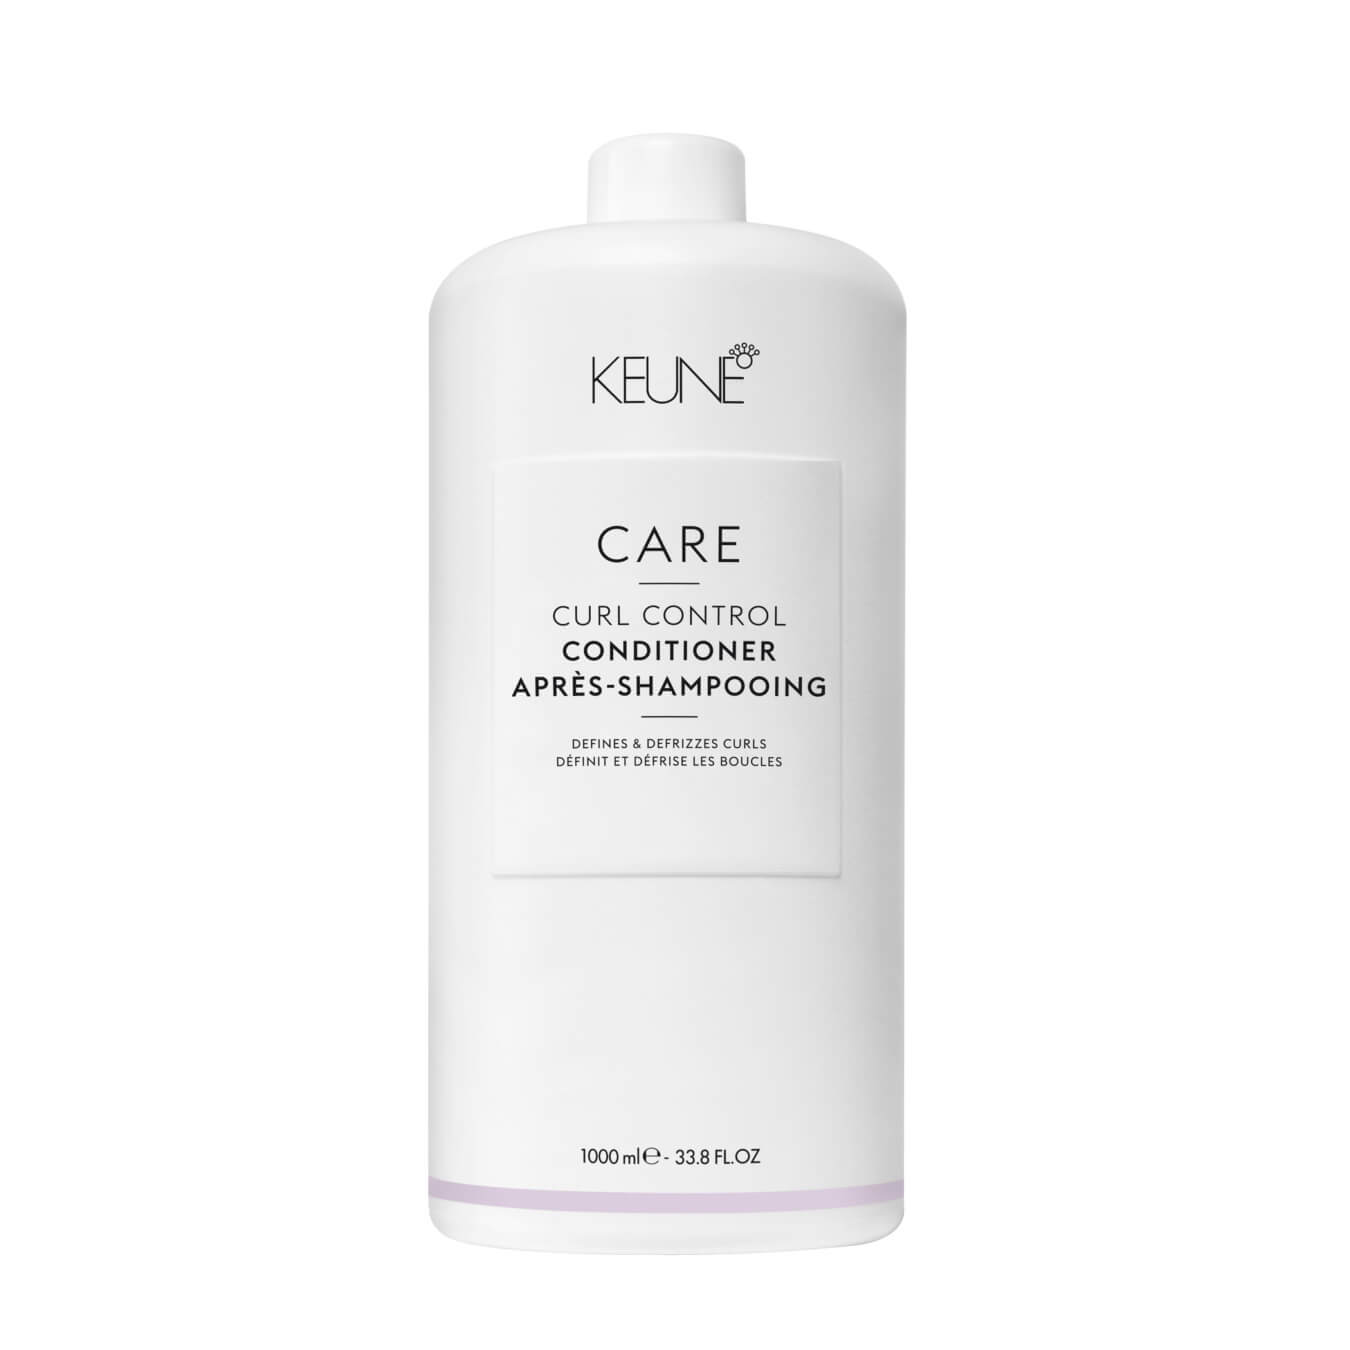 Koop Keune Care Curl Control Conditioner 1000ml